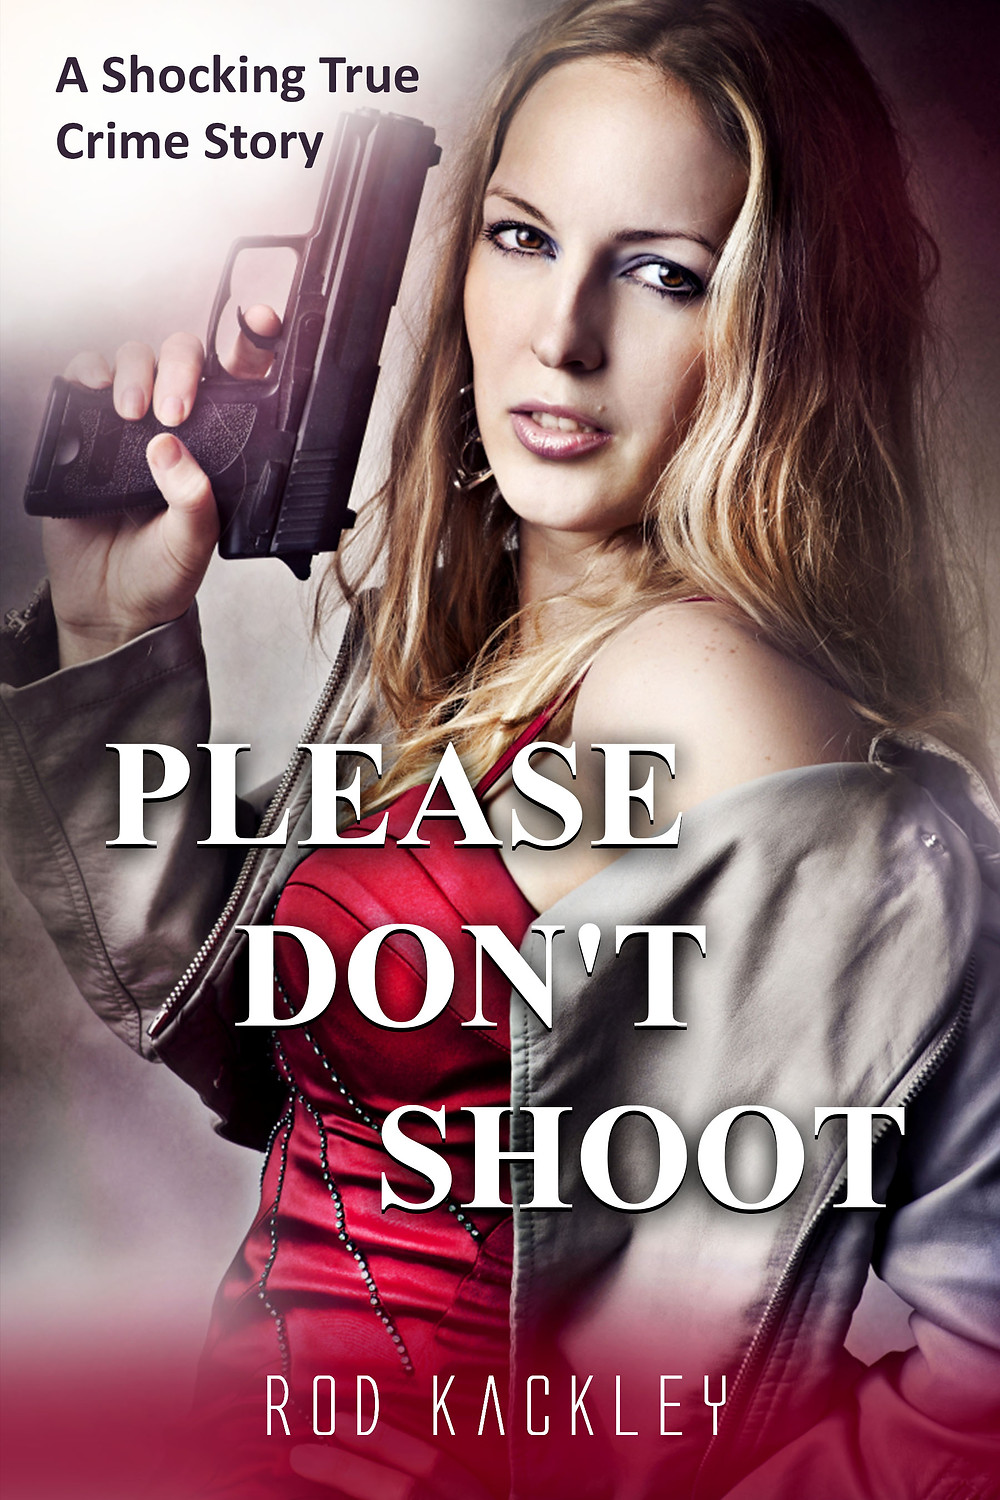 Please Don't Shoot by Rod Kackley